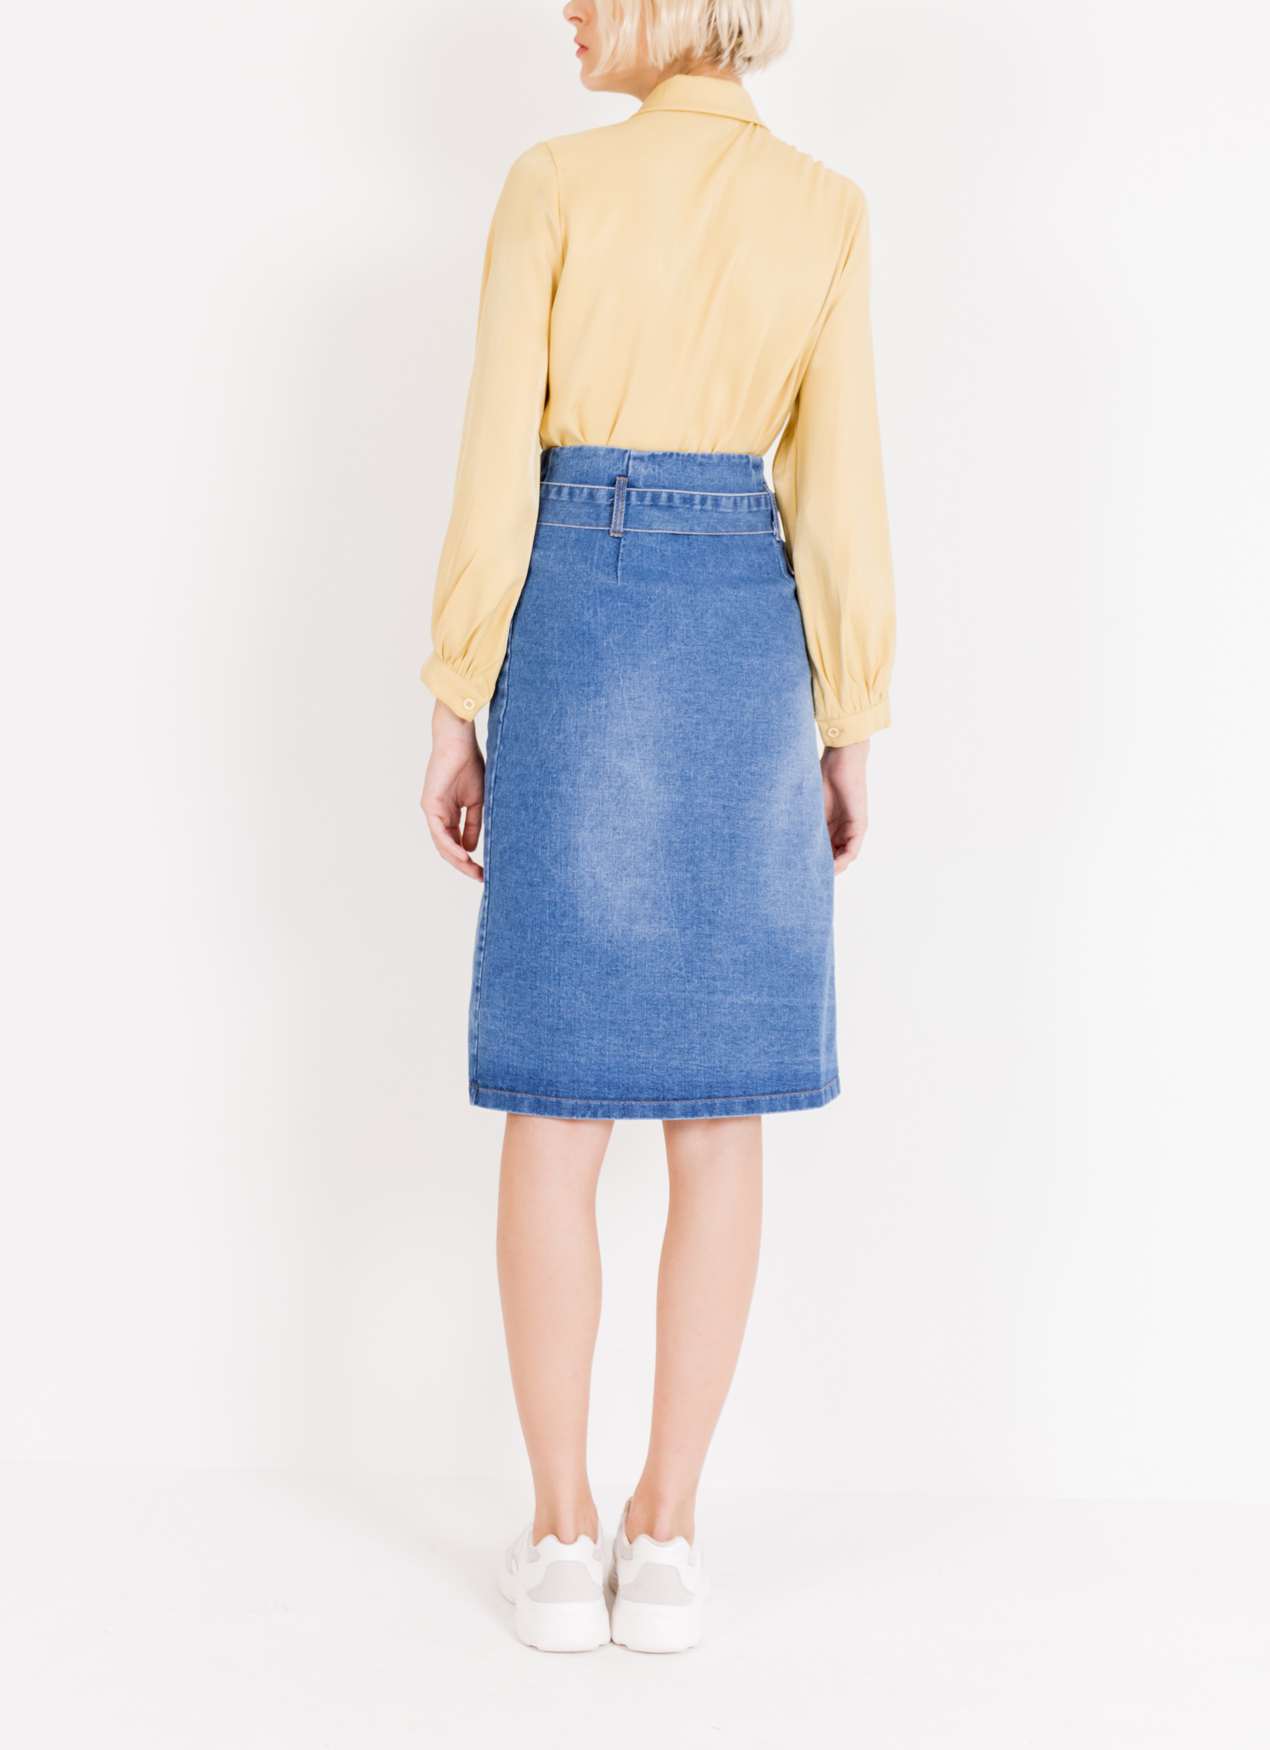 BOWN Candice Skirt - Deep blue